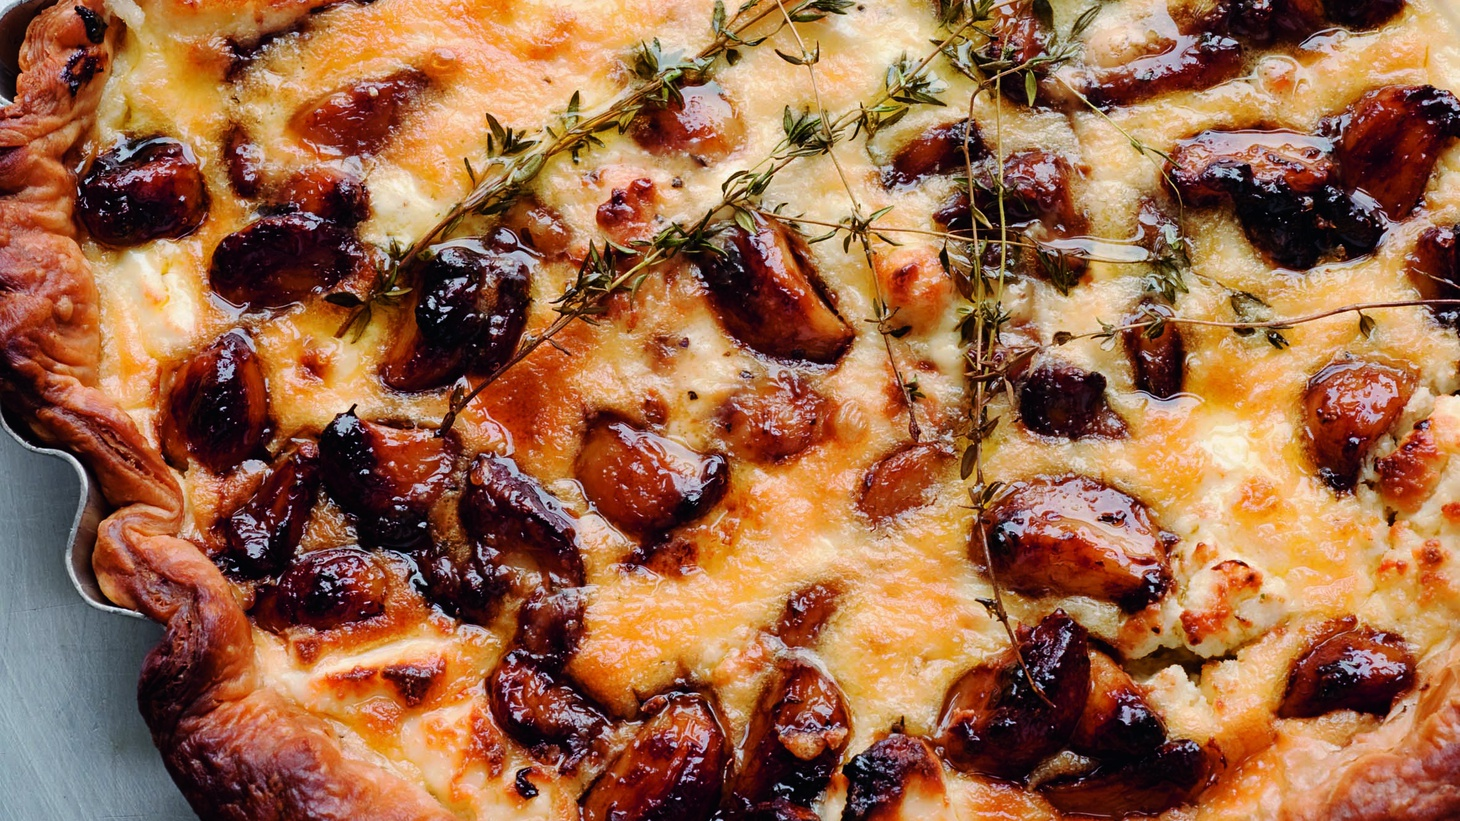 Yotam Ottolenghi owns a number of casual dining restaurants in London. He shares his recipe for a Carmelized Garlic tart.